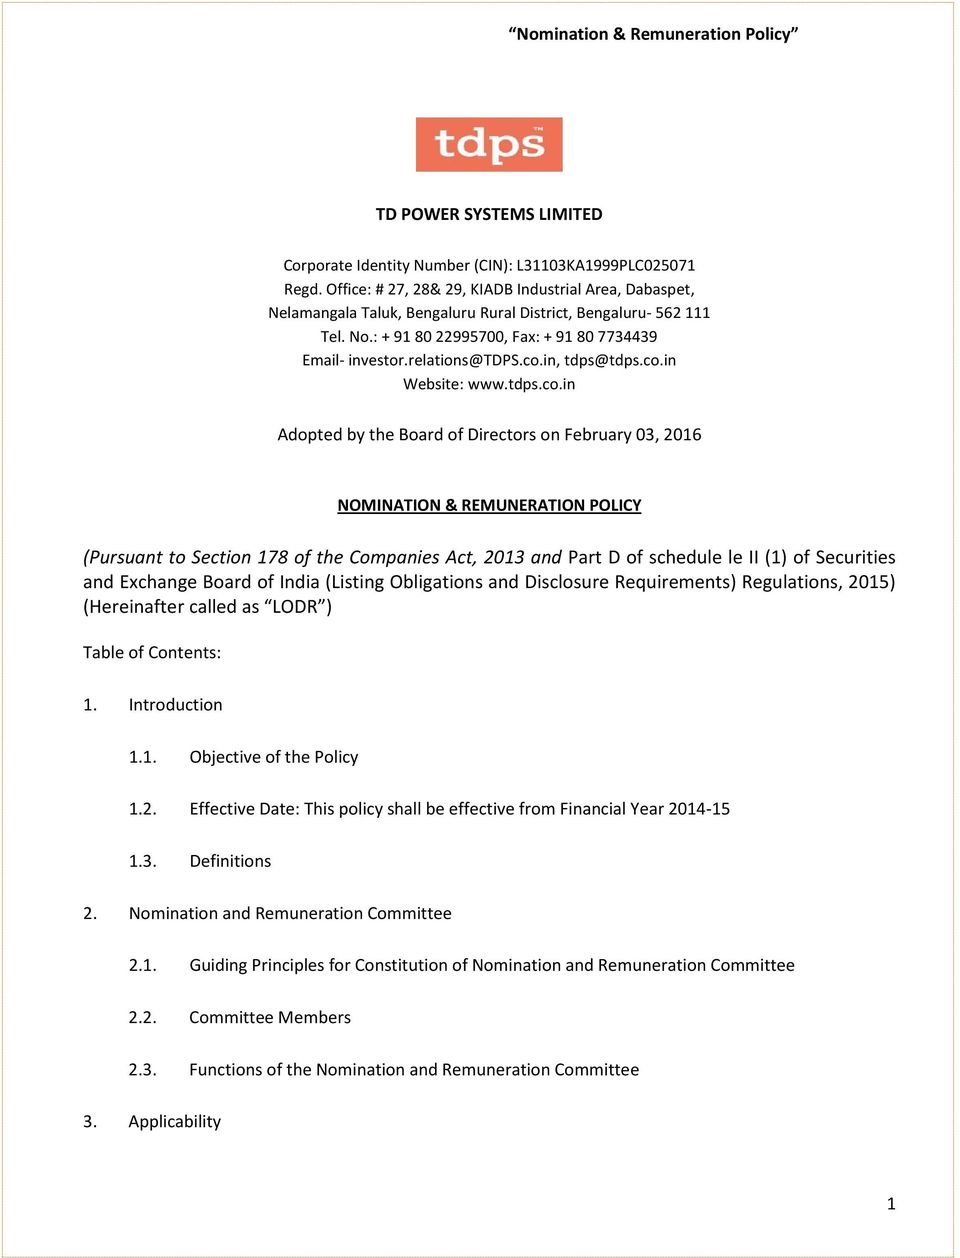 co.in, tdps@tdps.co.in Website: www.tdps.co.in Adopted by the Board of Directors on February 03, 2016 NOMINATION & REMUNERATION POLICY (Pursuant to Section 178 of the Companies Act, 2013 and Part D